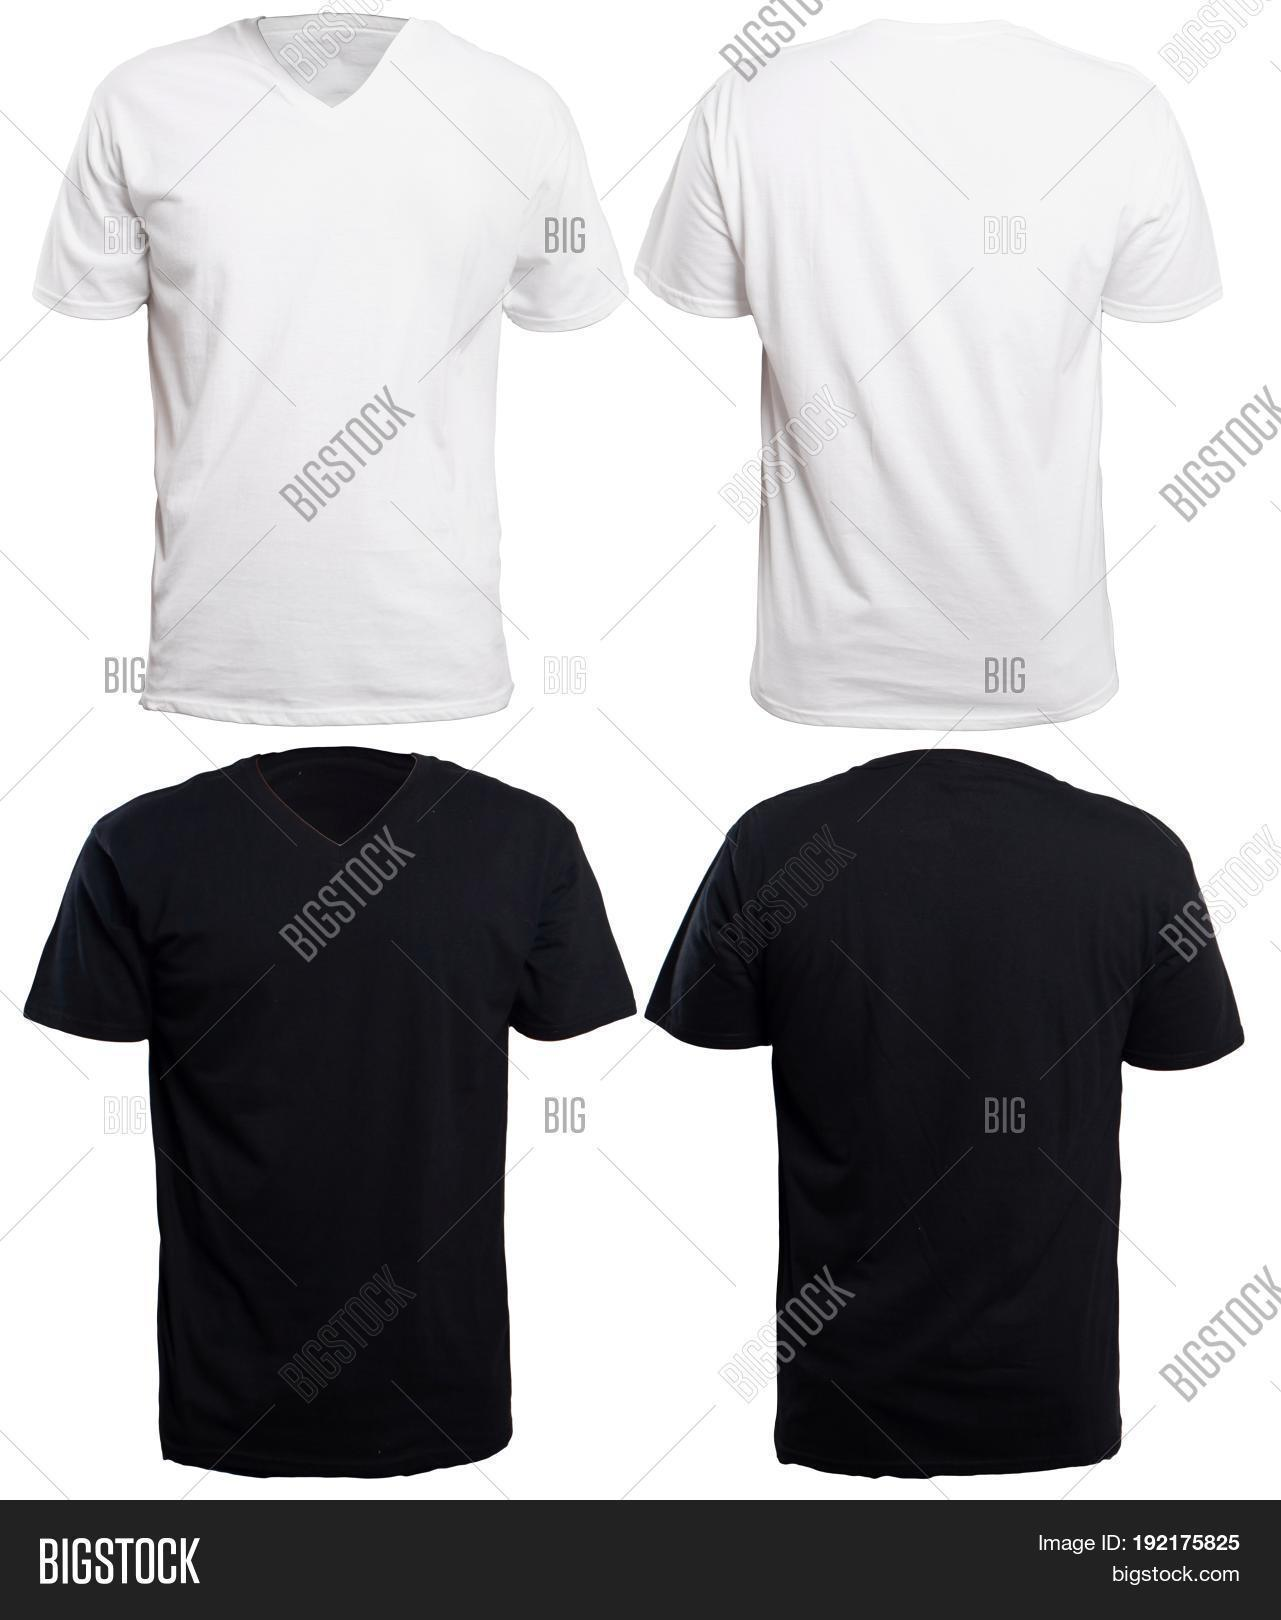 Black t shirt plain front and back - Blank V Neck Shirt Mock Up Template Front And Back View Isolated On White Plain